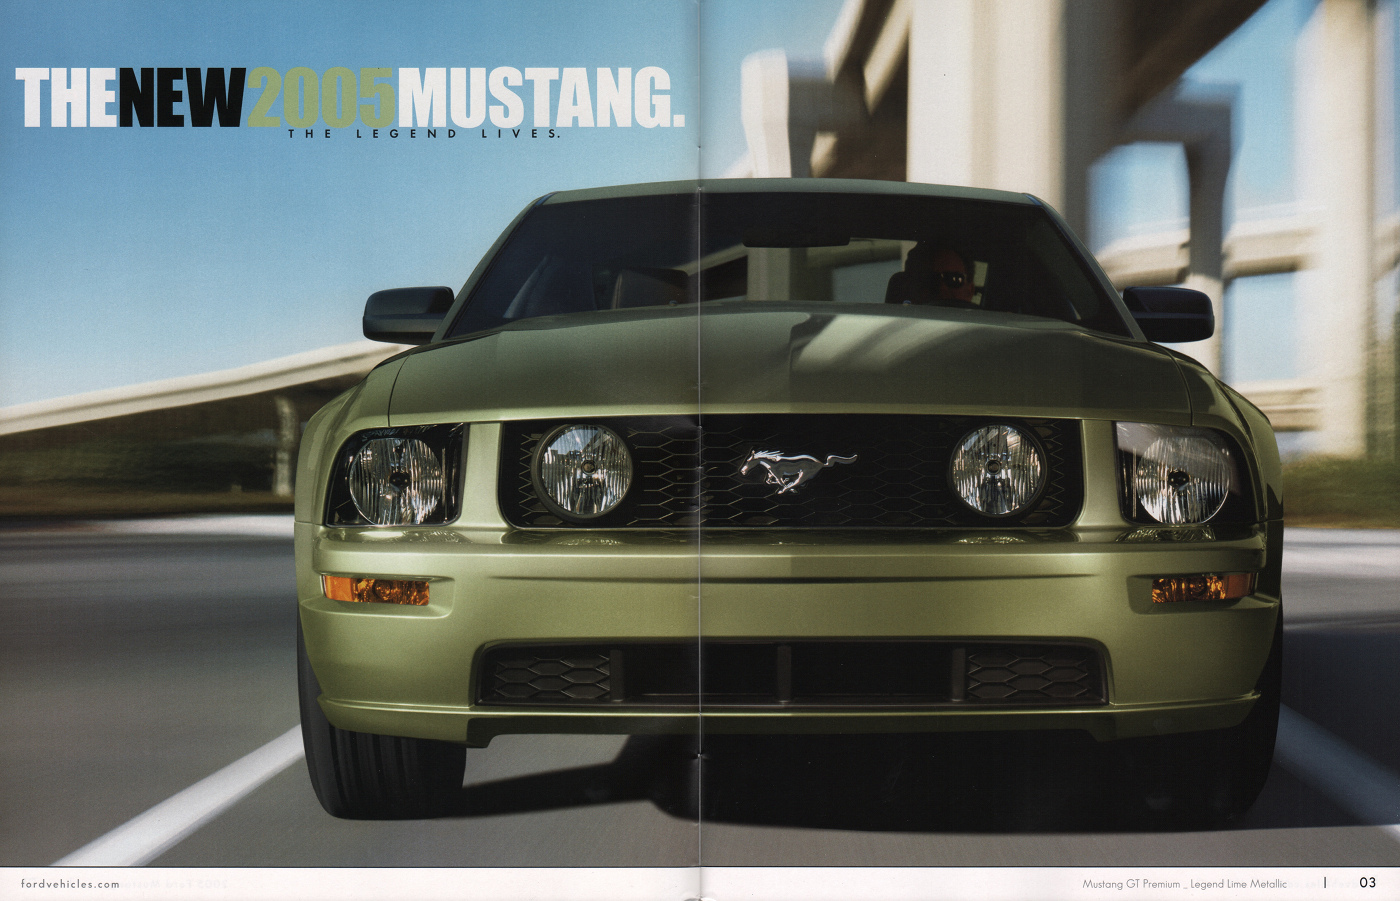 Legend Lime 2005 Mustang GT